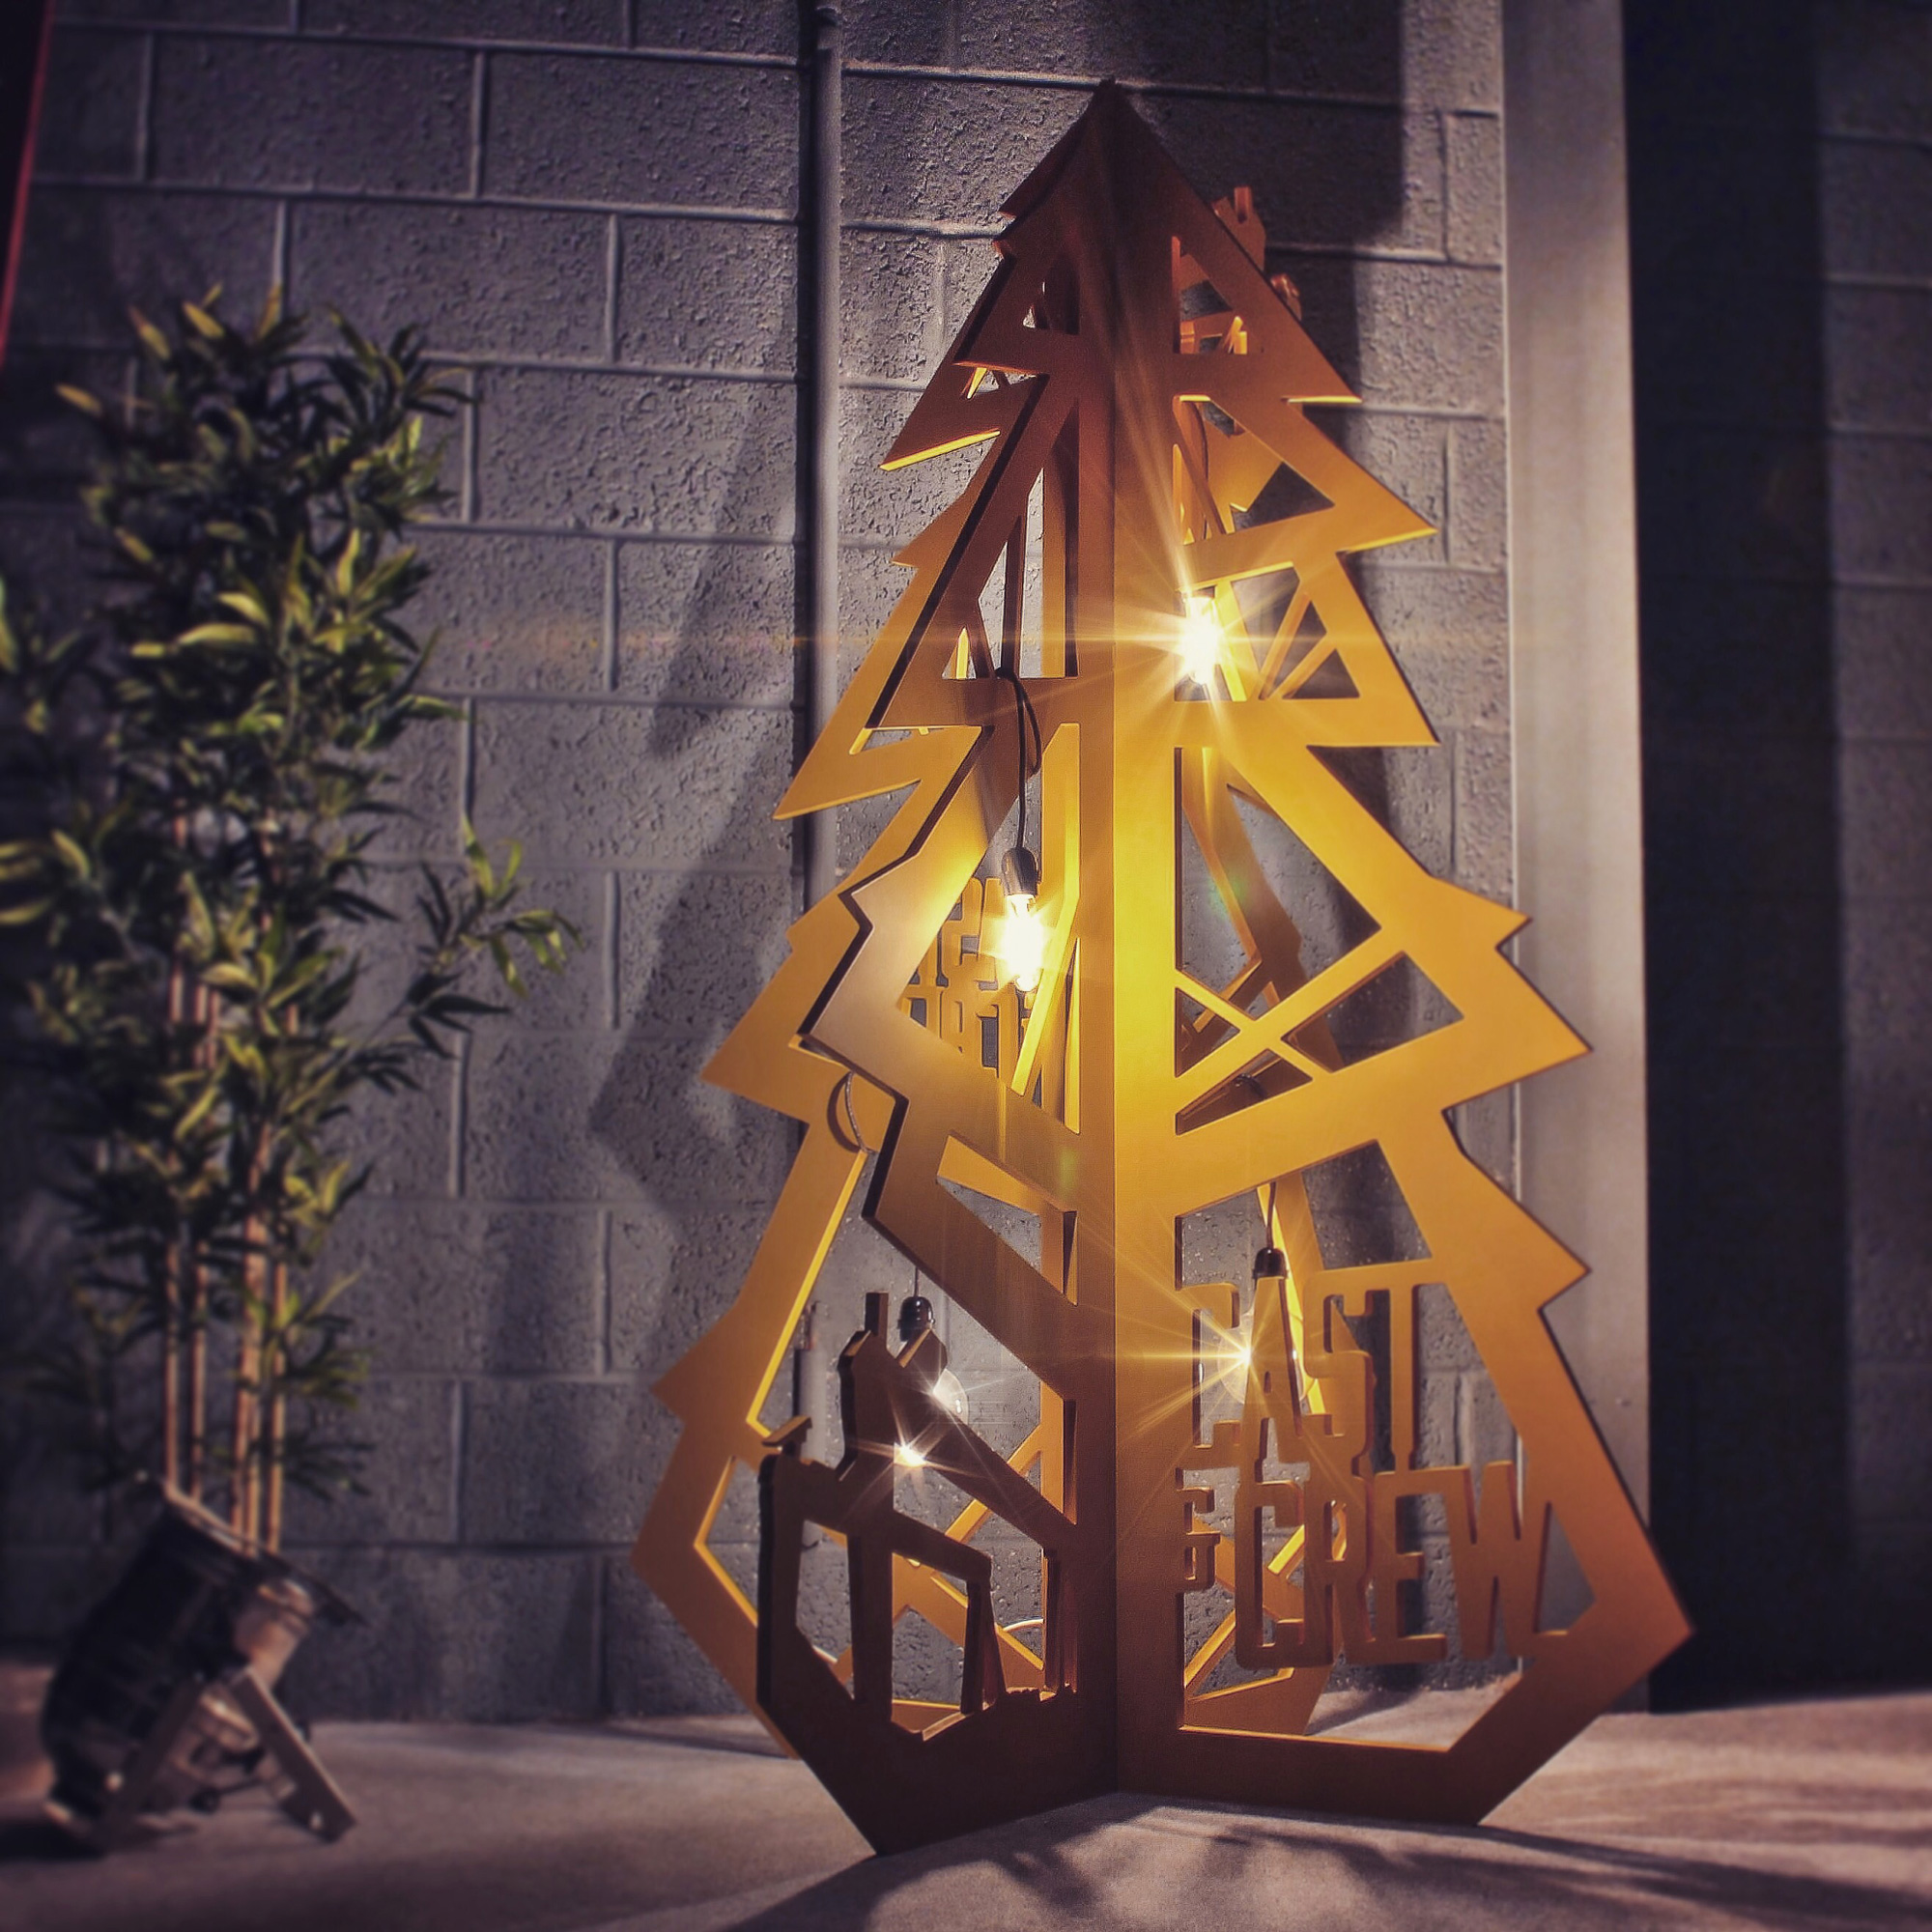 3D graphic christmas tree prop.